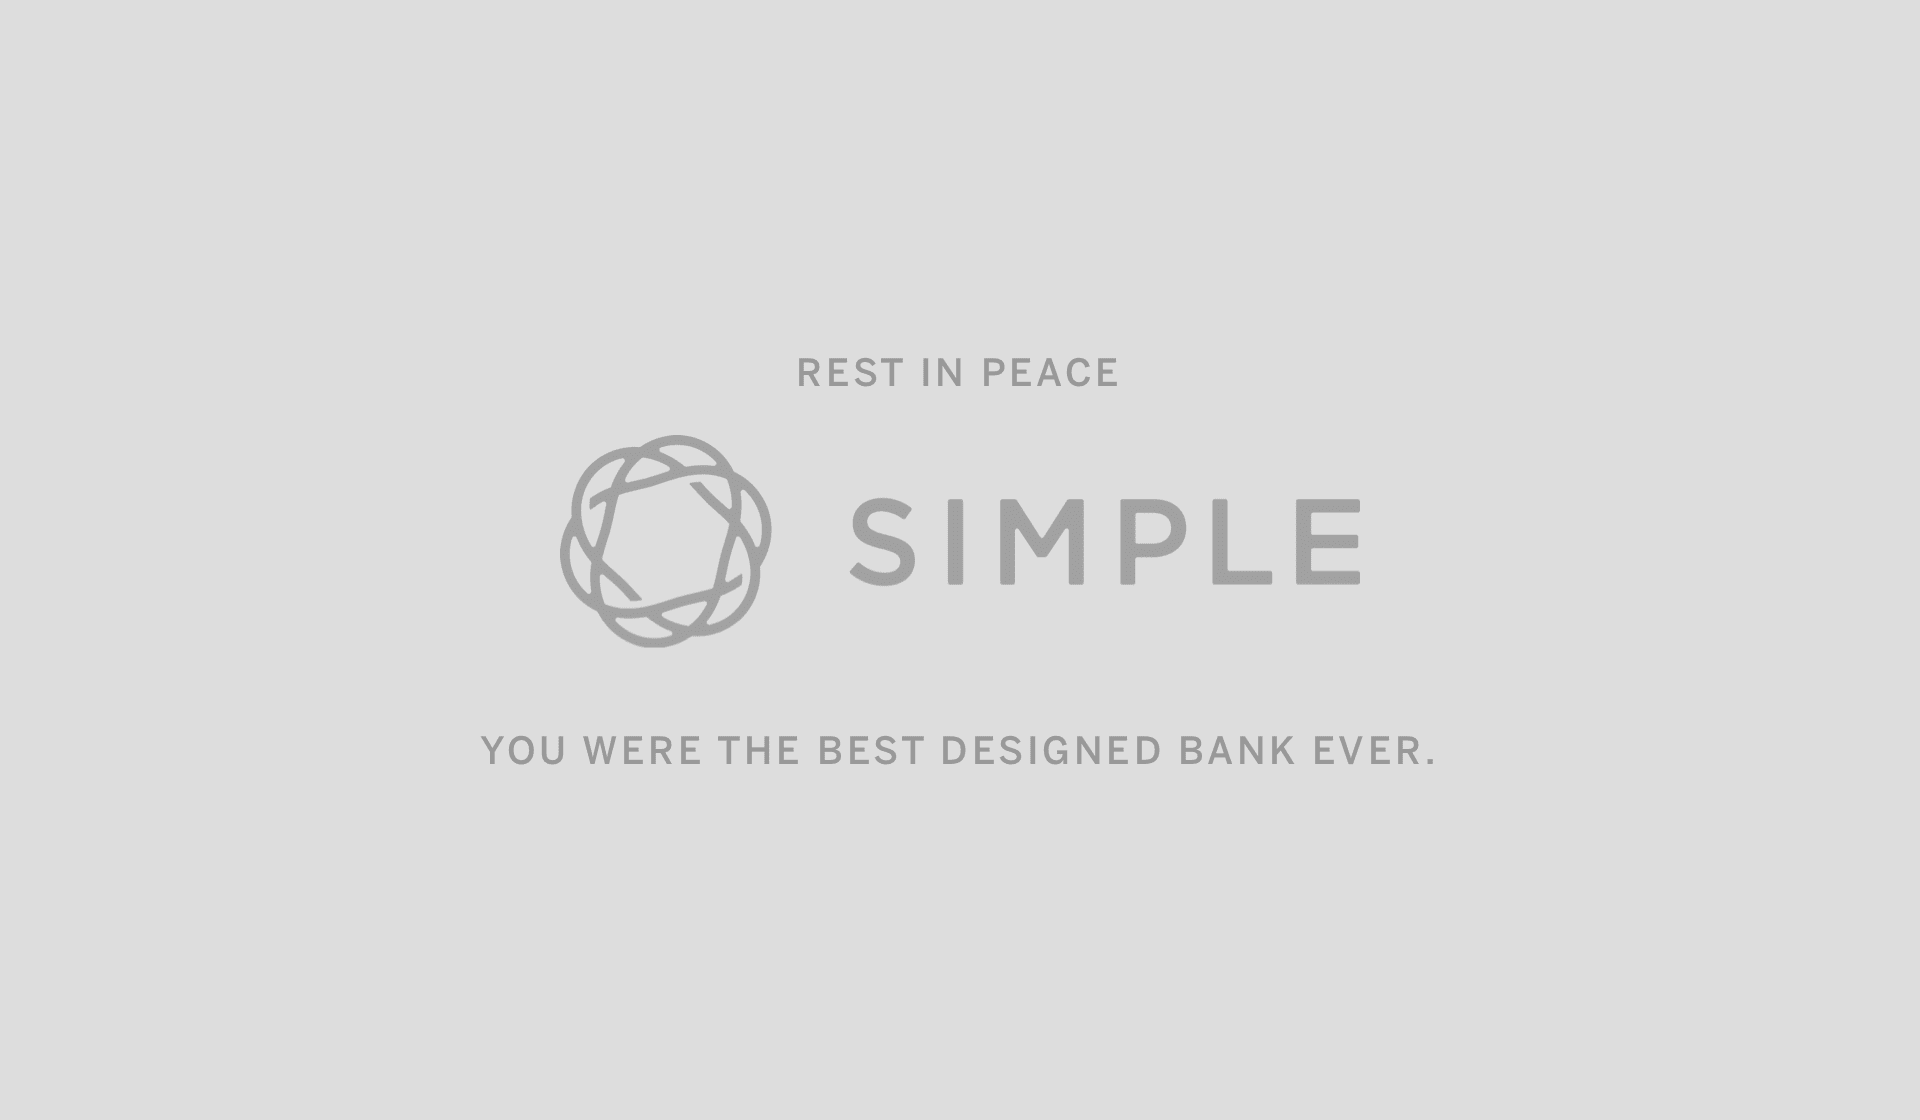 Rest in Peace Simple. You were the best designed Bank EVER.